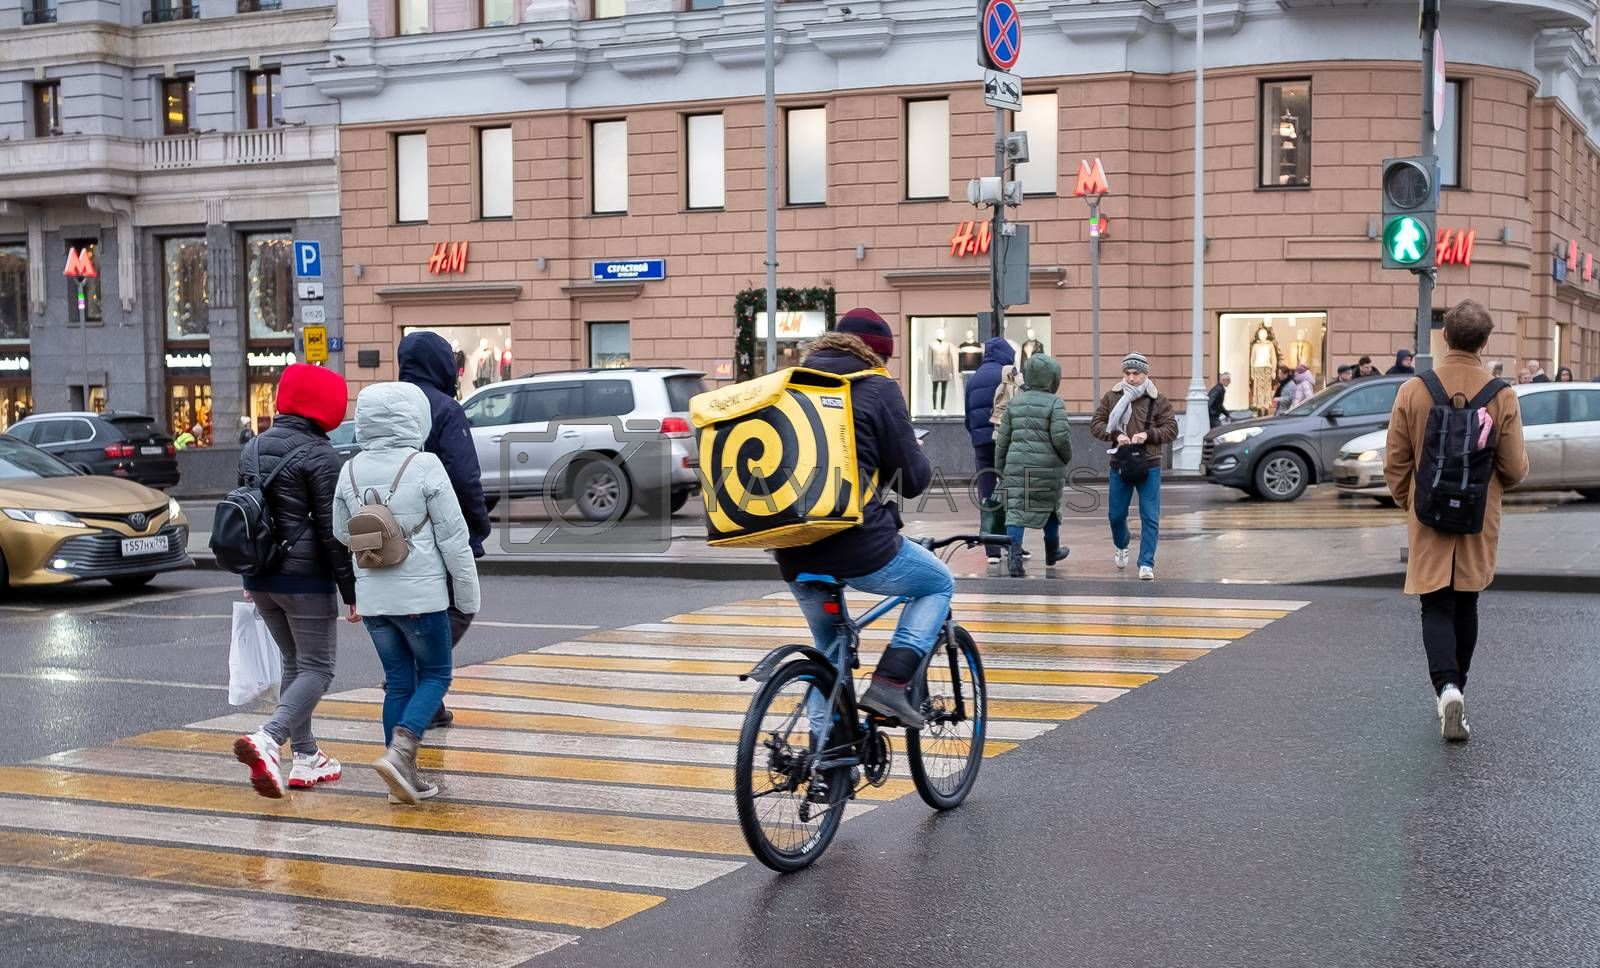 January 21, 2020 Moscow, Russia. An employee of the Yandex Food delivery service on a Moscow street.